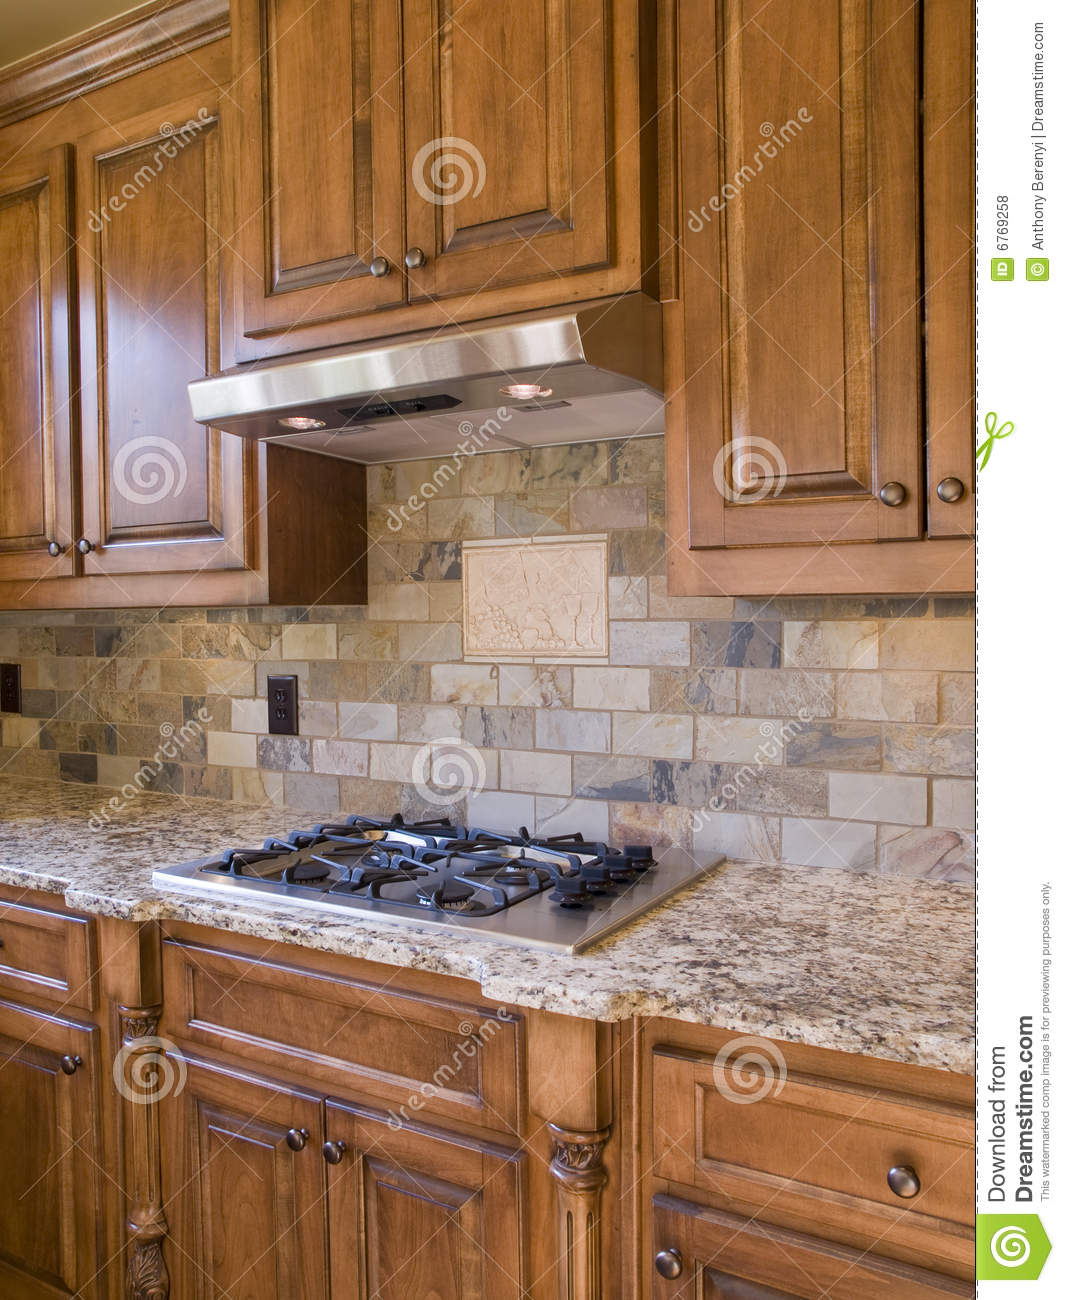 Kitchen Cooktop And Cabinets Angle View Stock Photo